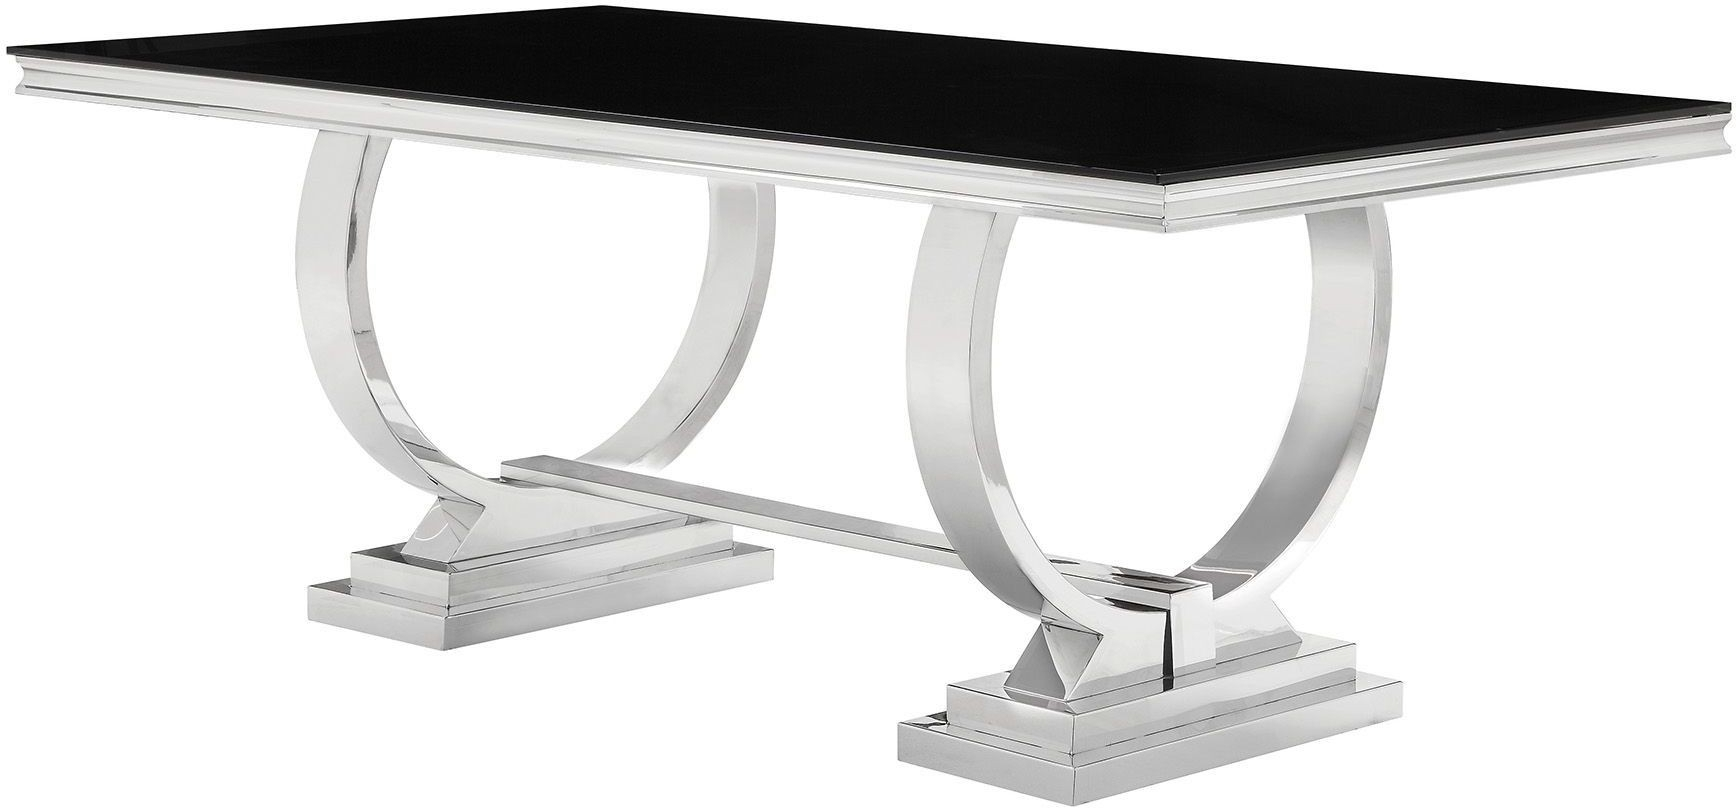 Popular Coaster Antoine Chrome Dining Table – Antoine Collection: 7 Reviews Inside Chrome Dining Tables (View 21 of 25)